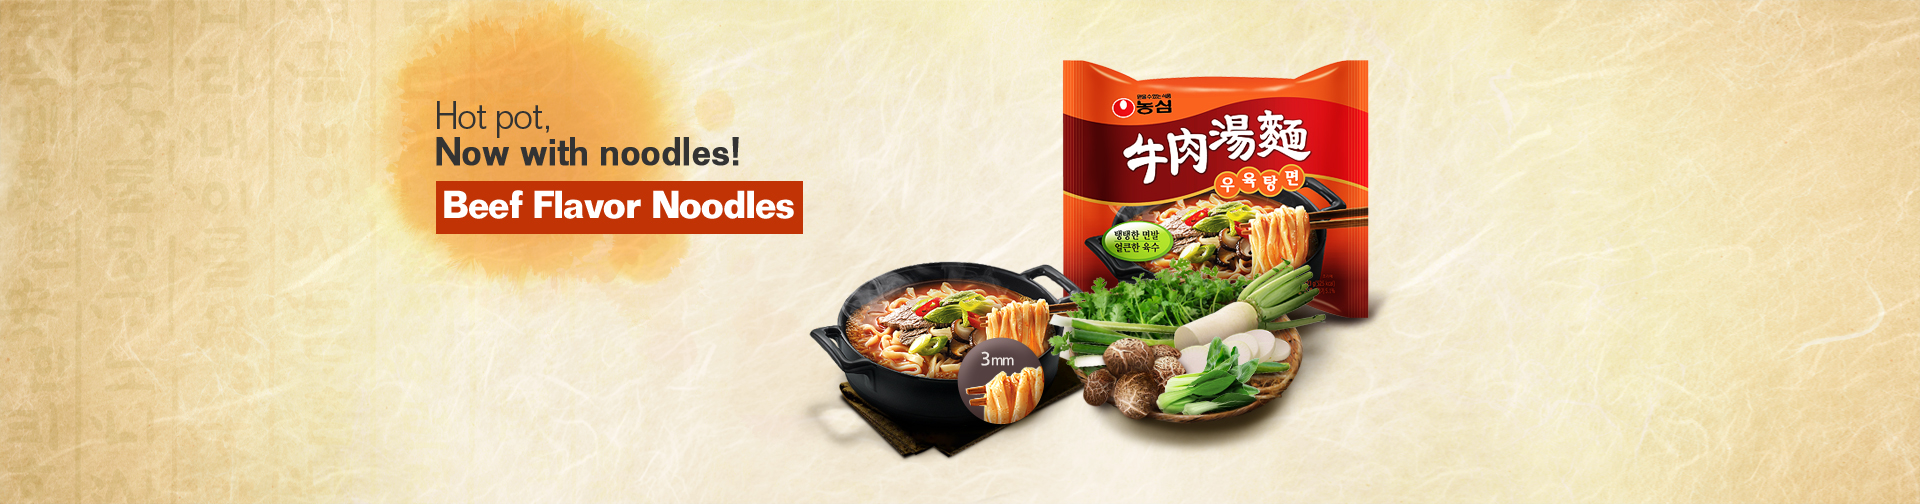 Hot pot,